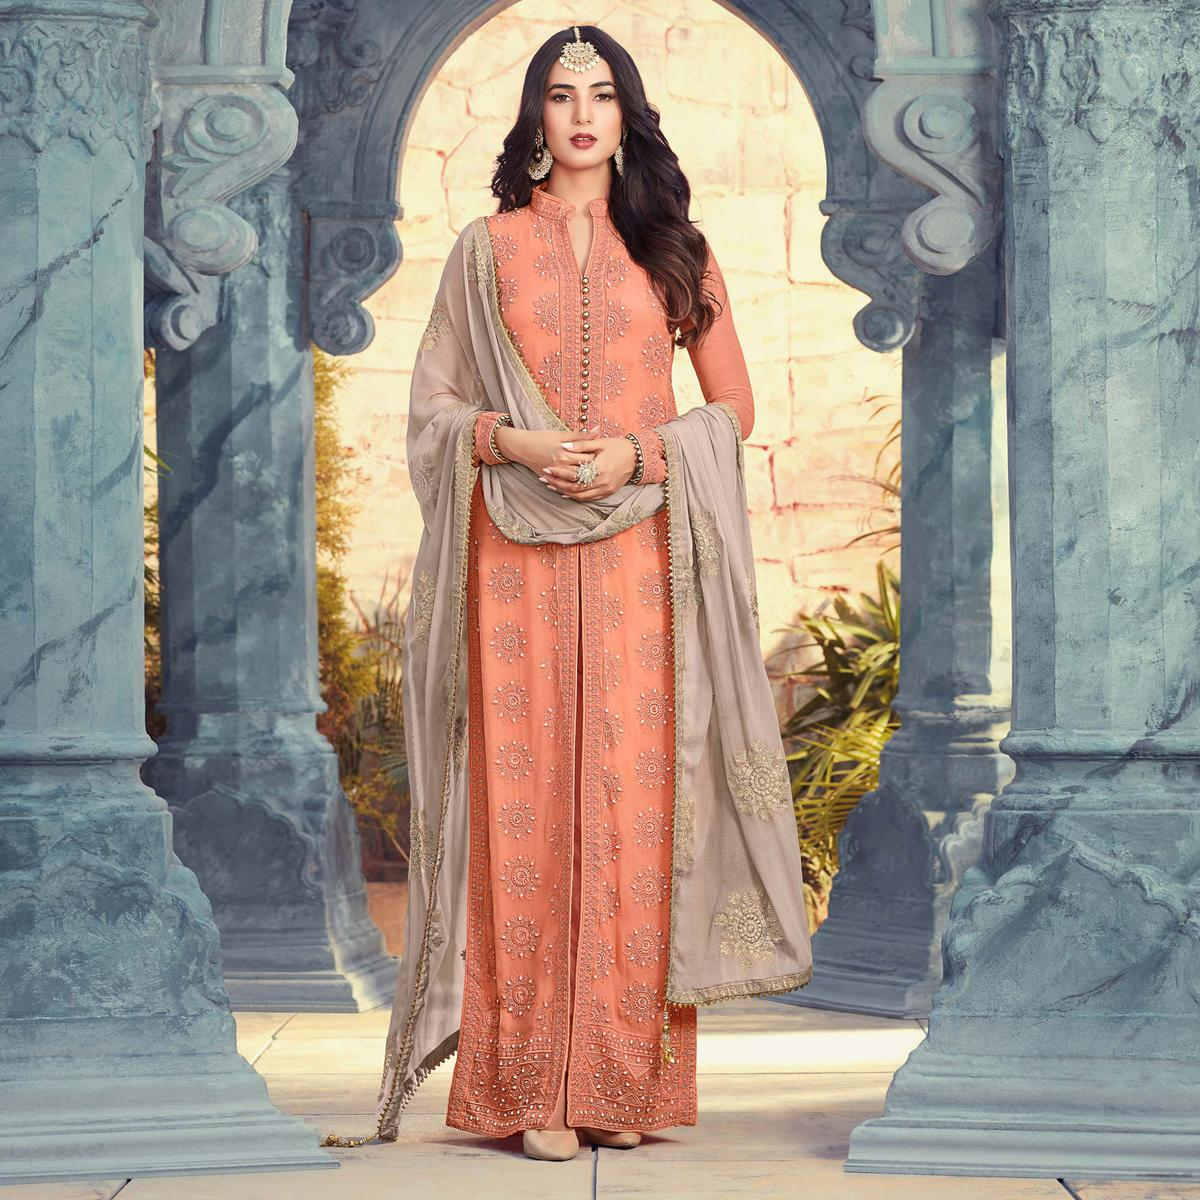 Mesmerising Peach Orange Colored Designer Embroidered Party Wear Heavy Georgette Suit